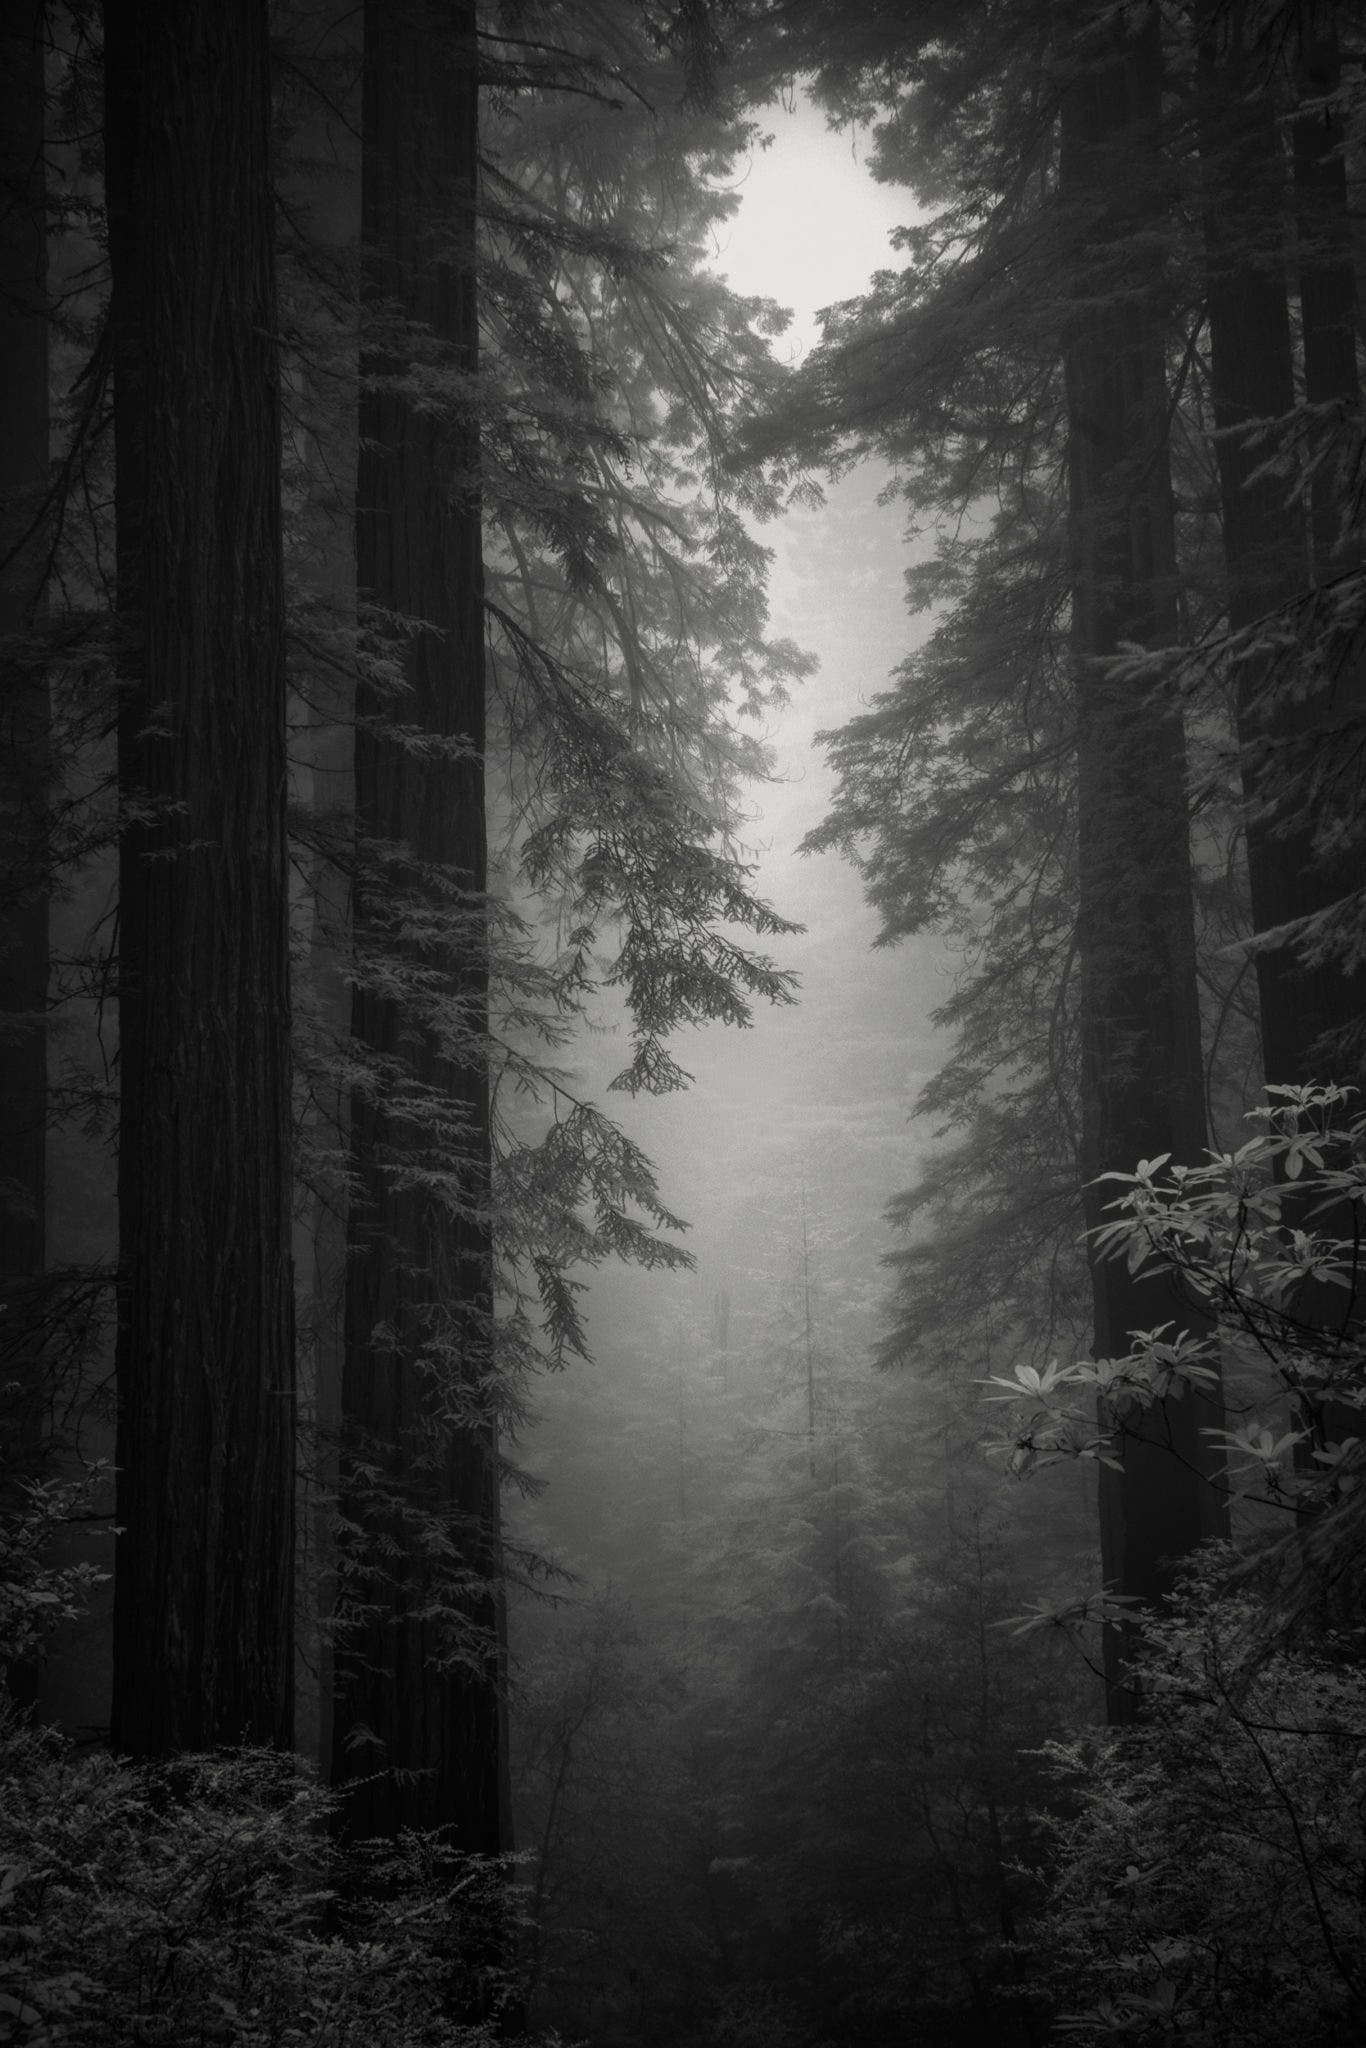 Nathan Wirth's Infrared Sony a7r Got These Spooky Redwood Photos